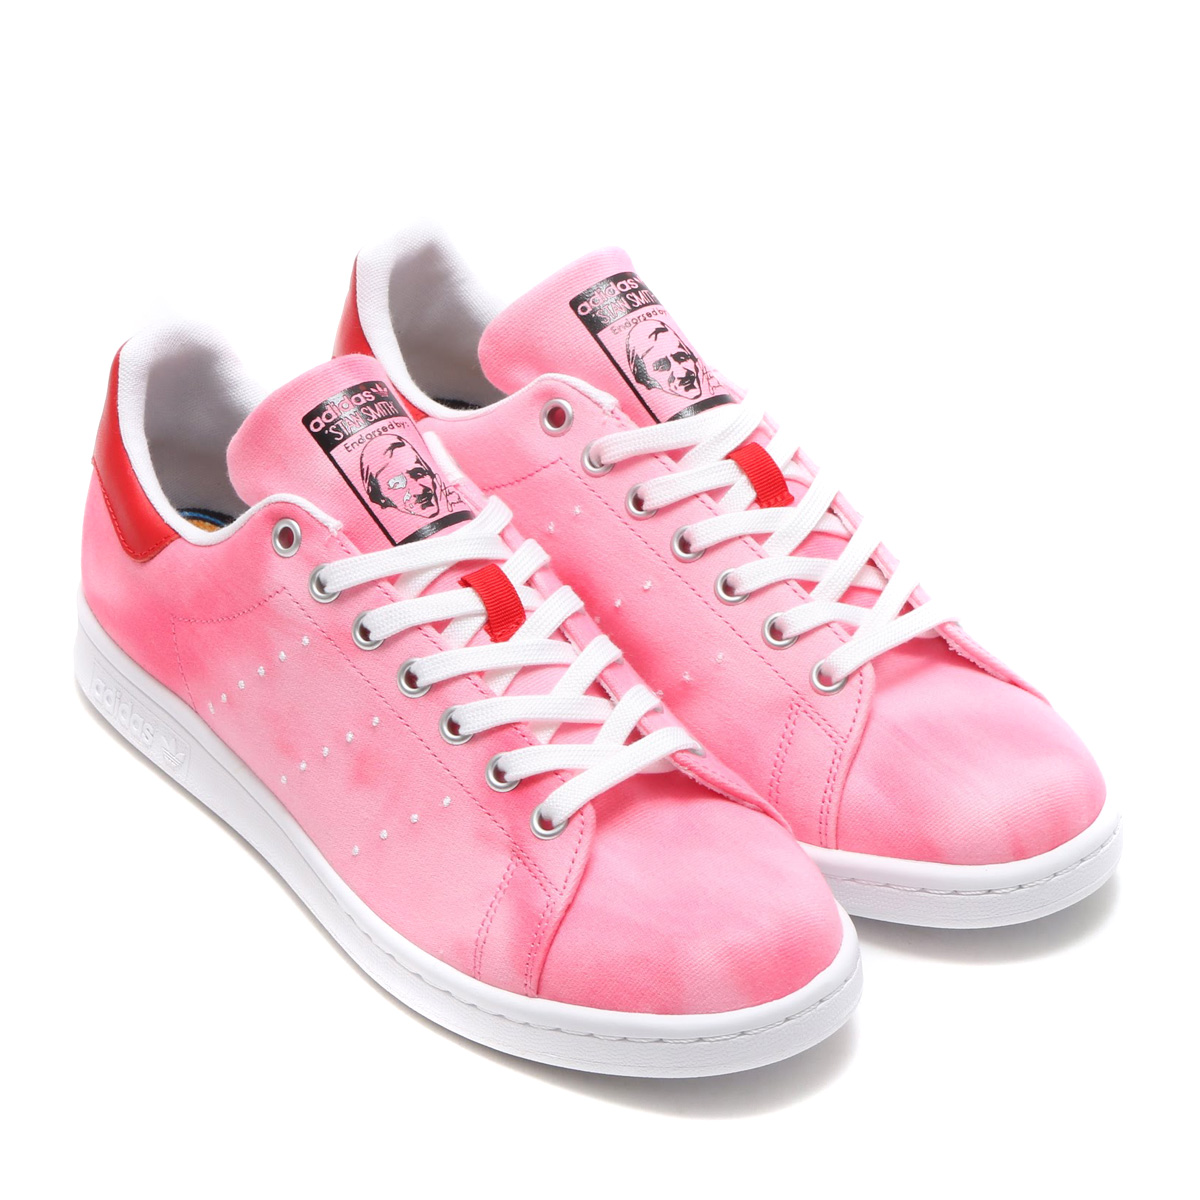 timeless design 0cb77 9c6f5 adidas Originals PW HU HOLI STAN SMITH (Adidas originals Farrell Williams  HU HOLI Stan Smith) Red / Running White / Running White 18SS-S